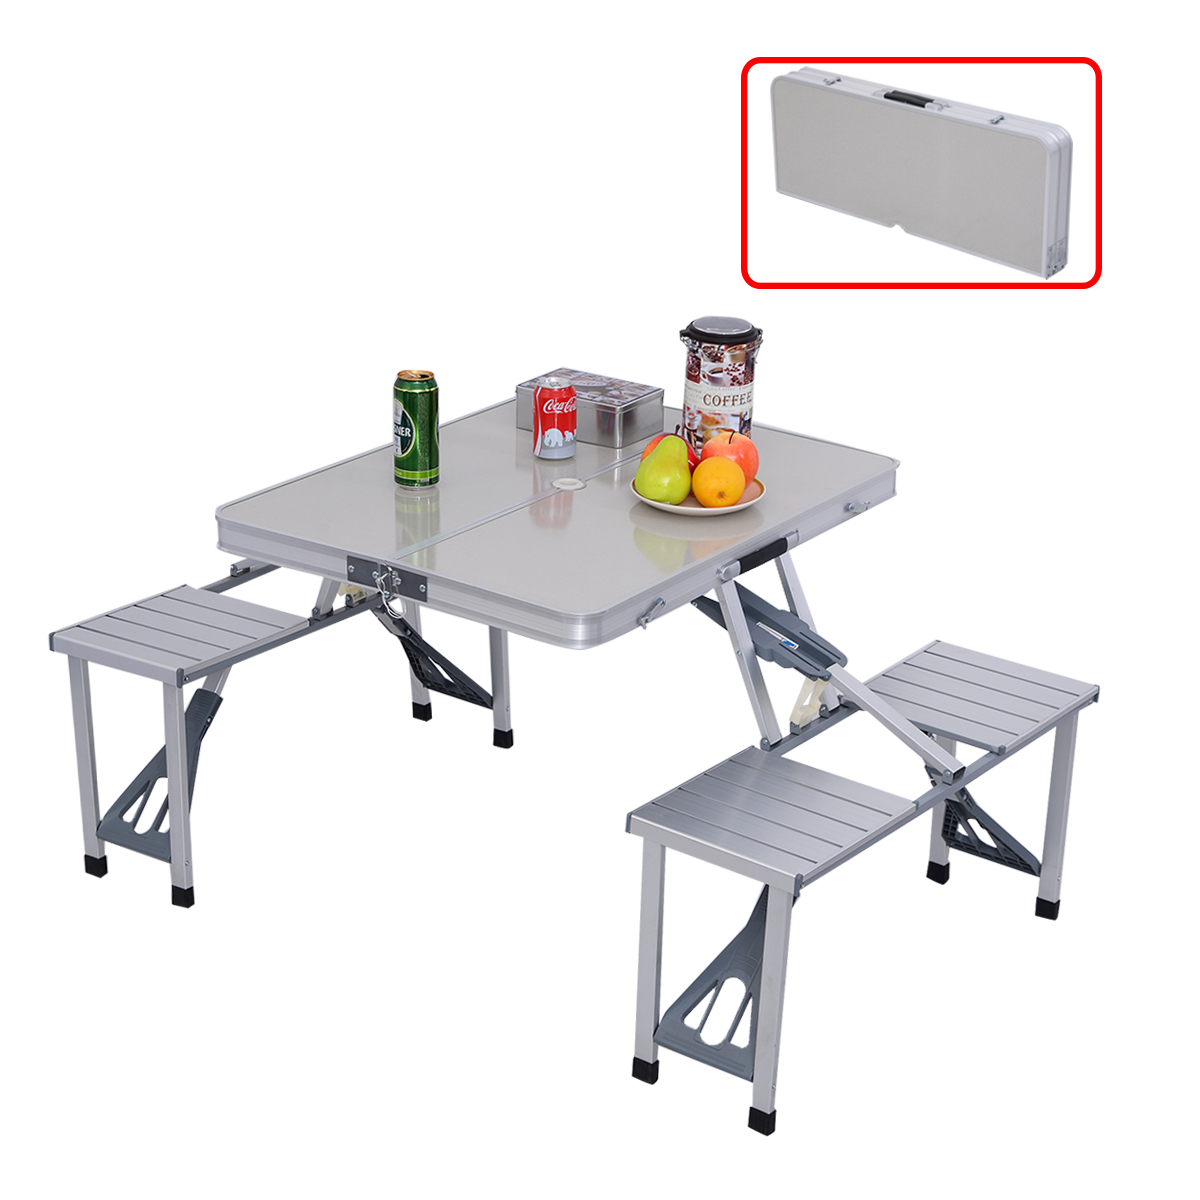 Costway Outdoor Garden Aluminum Portable Folding Camping Picnic Table W  4 Seats by Costway